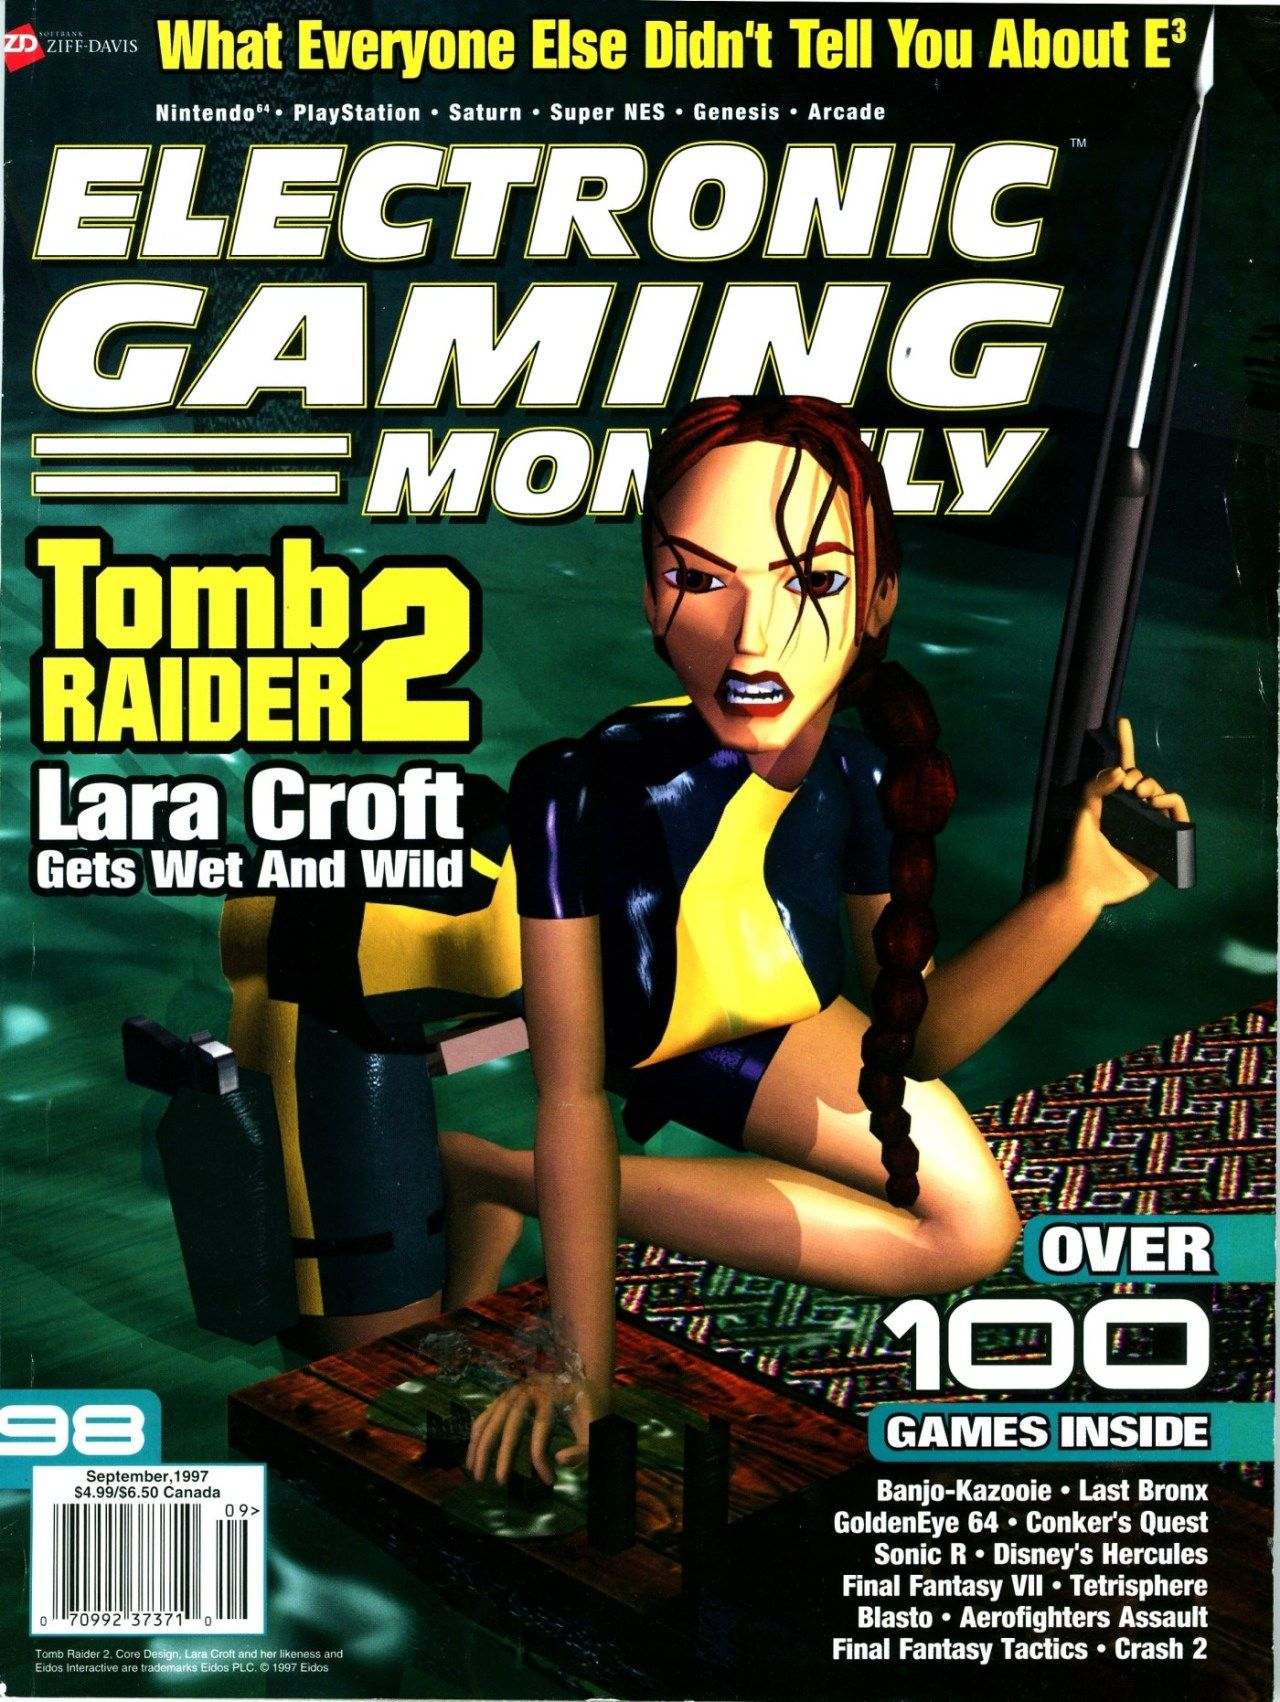 EGM 98, September 1997 Tomb Raider 2 cover. (With images